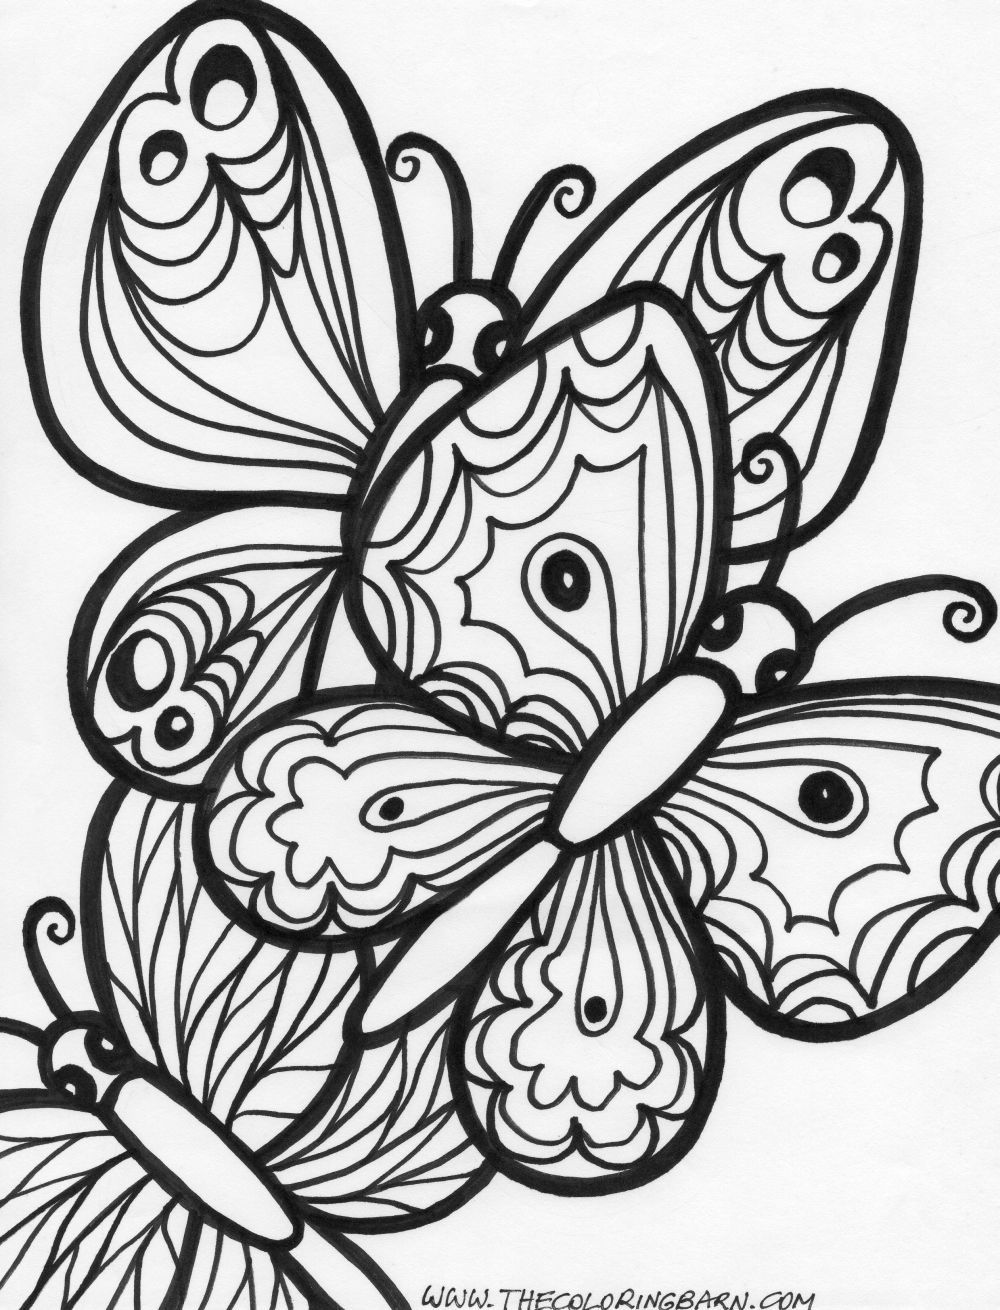 Butterflies Coloring Pages Butterfly Coloring Page Detailed Coloring Pages Mandala Coloring Pages